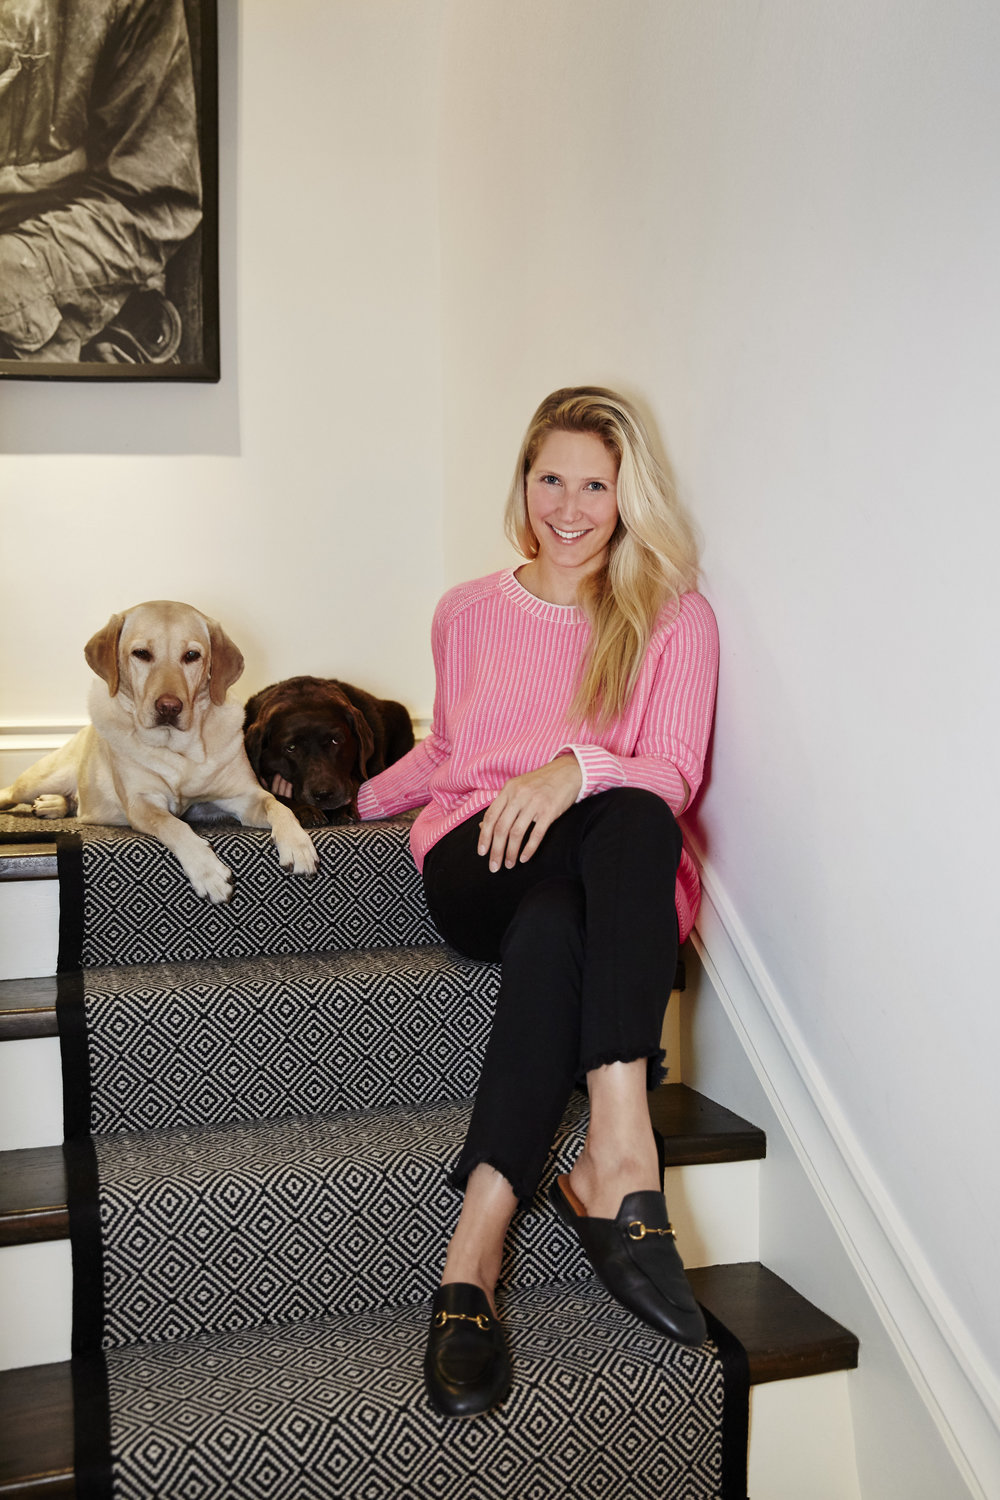 Leonora Bamford  - The entrepreneur, founder of My-Baba and super glam mother of 3, gives us an insight into her life at home and at work, sharing her top tips on juggling a busy life....from her favourite quick & easy kids recipes, to how she unwinds after a frantic day...